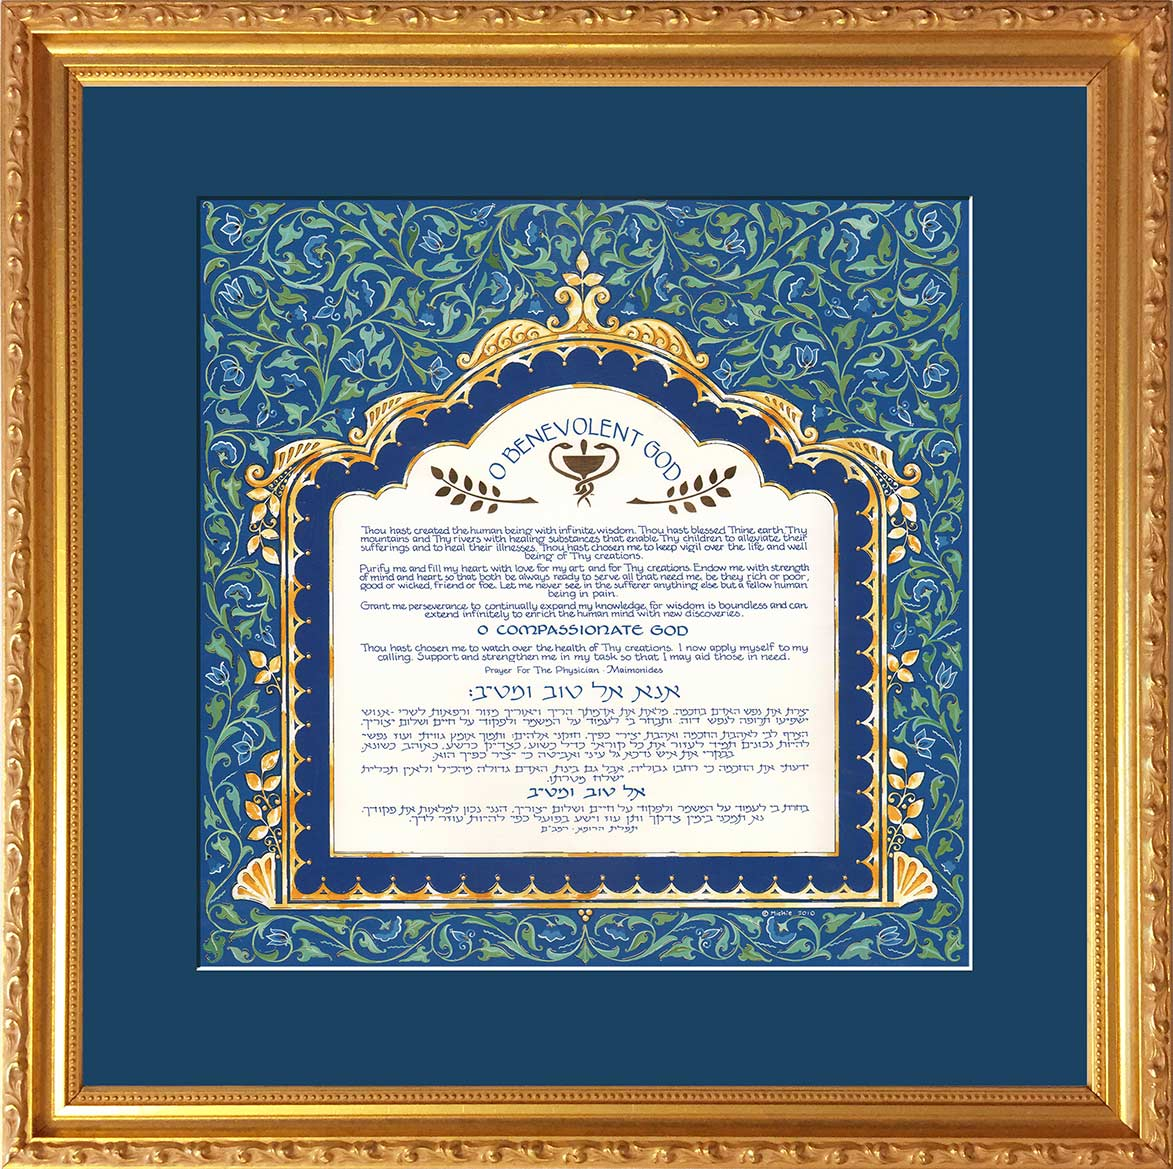 maimonides prayer for the physician by mickie caspi